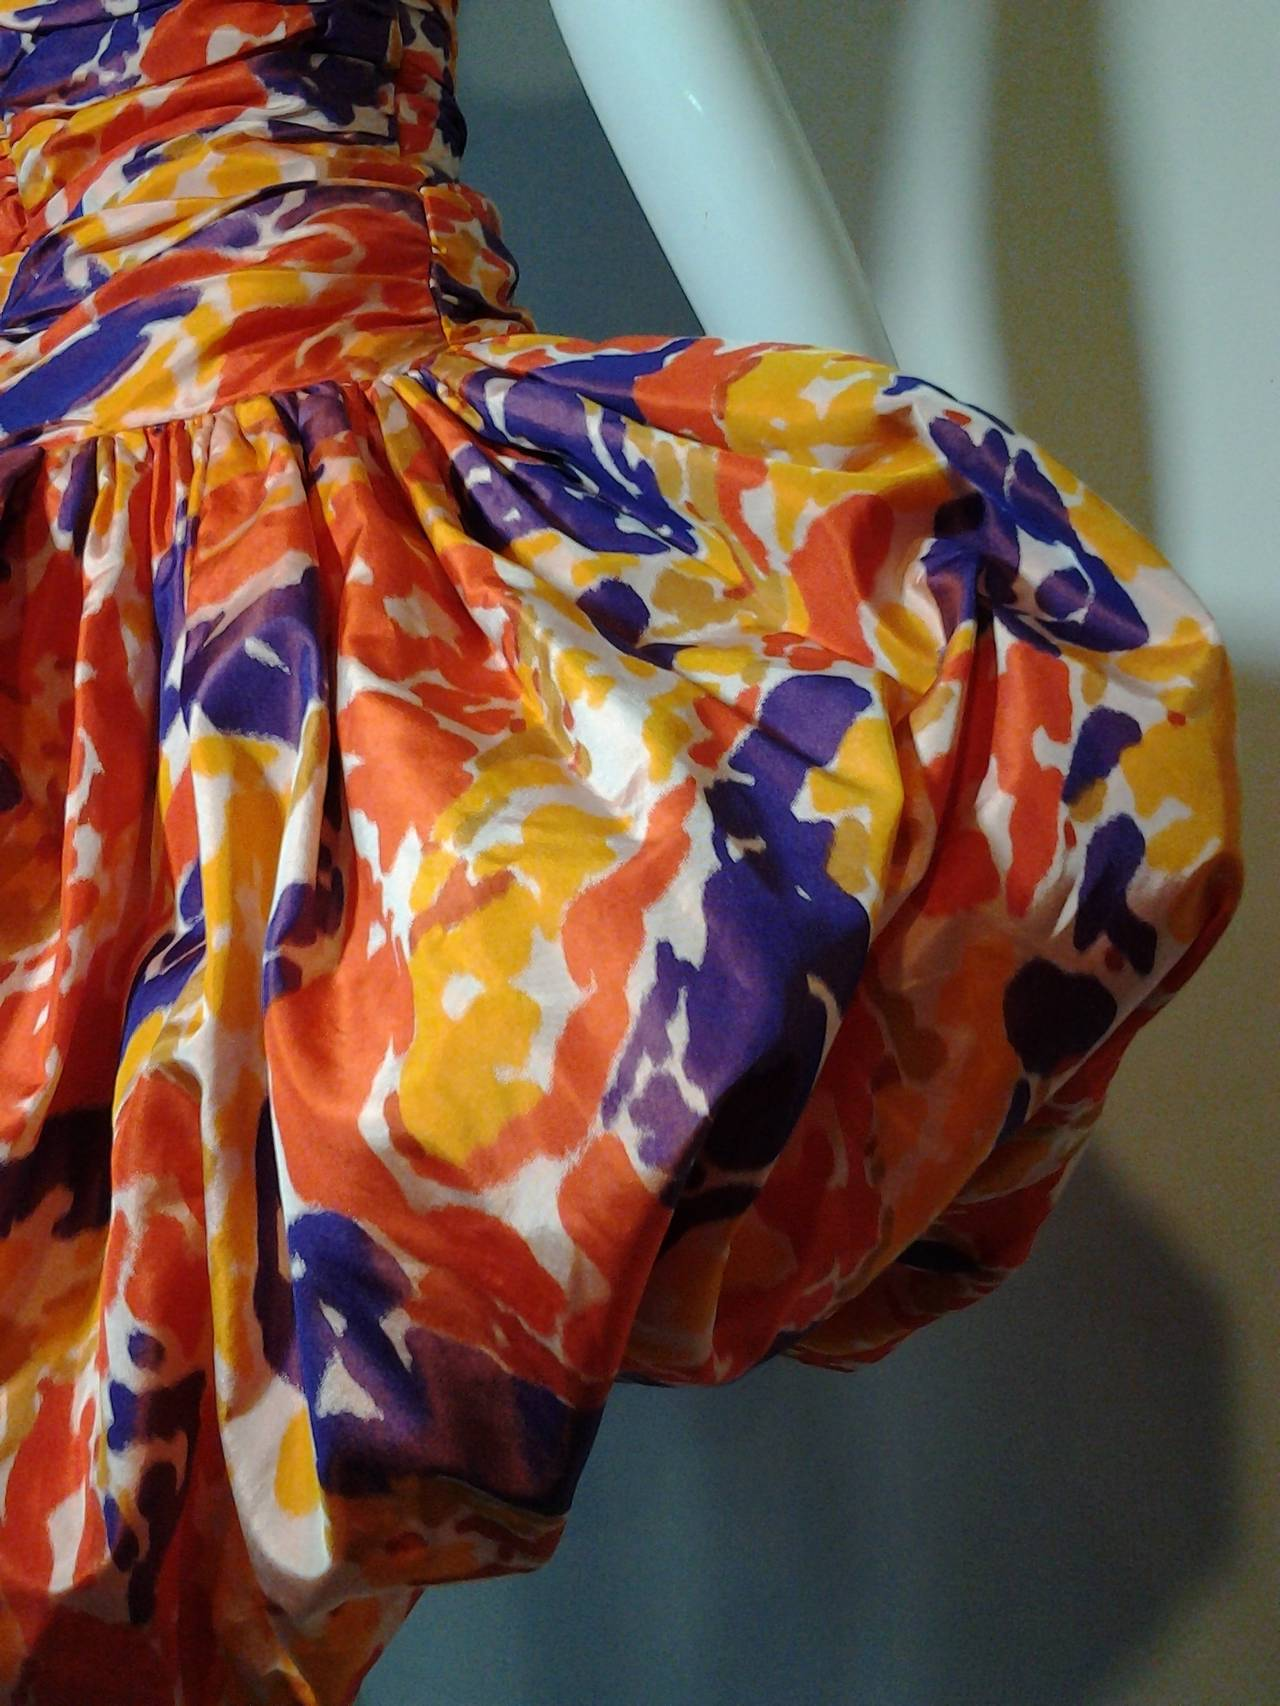 1980s Bill Blass Silk Floral Print Strapless Pouf Dress In Excellent Condition For Sale In San Francisco, CA